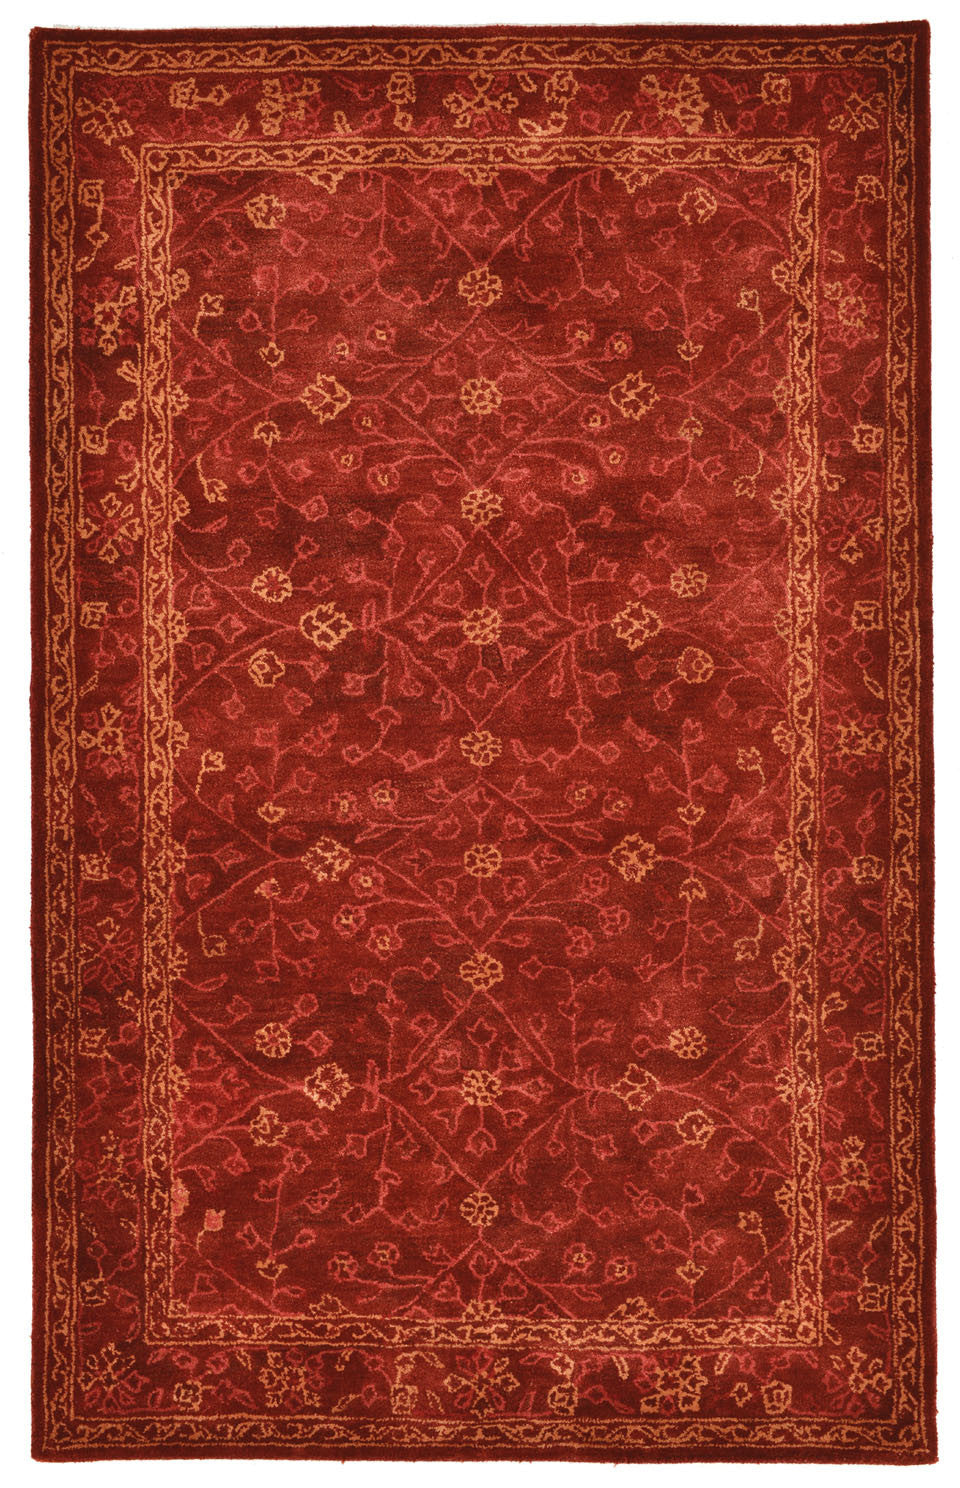 Trans-Ocean Imports GOA58826224 Goa Collection Red Finish Indoor Rug from Trans-Ocean